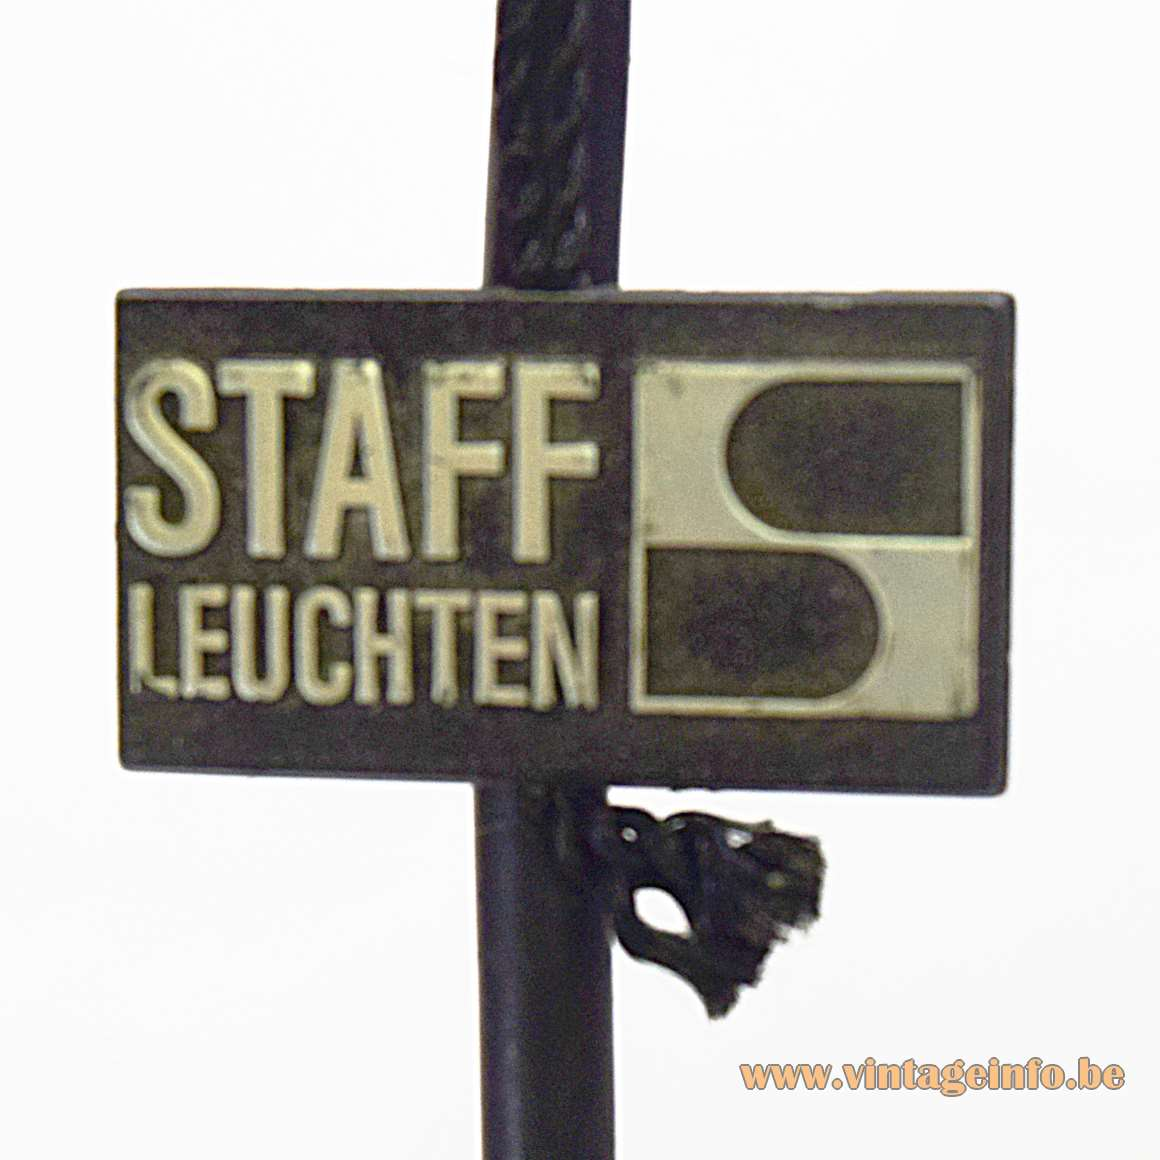 Staff Pendant Lights 5517 - attached logo/label